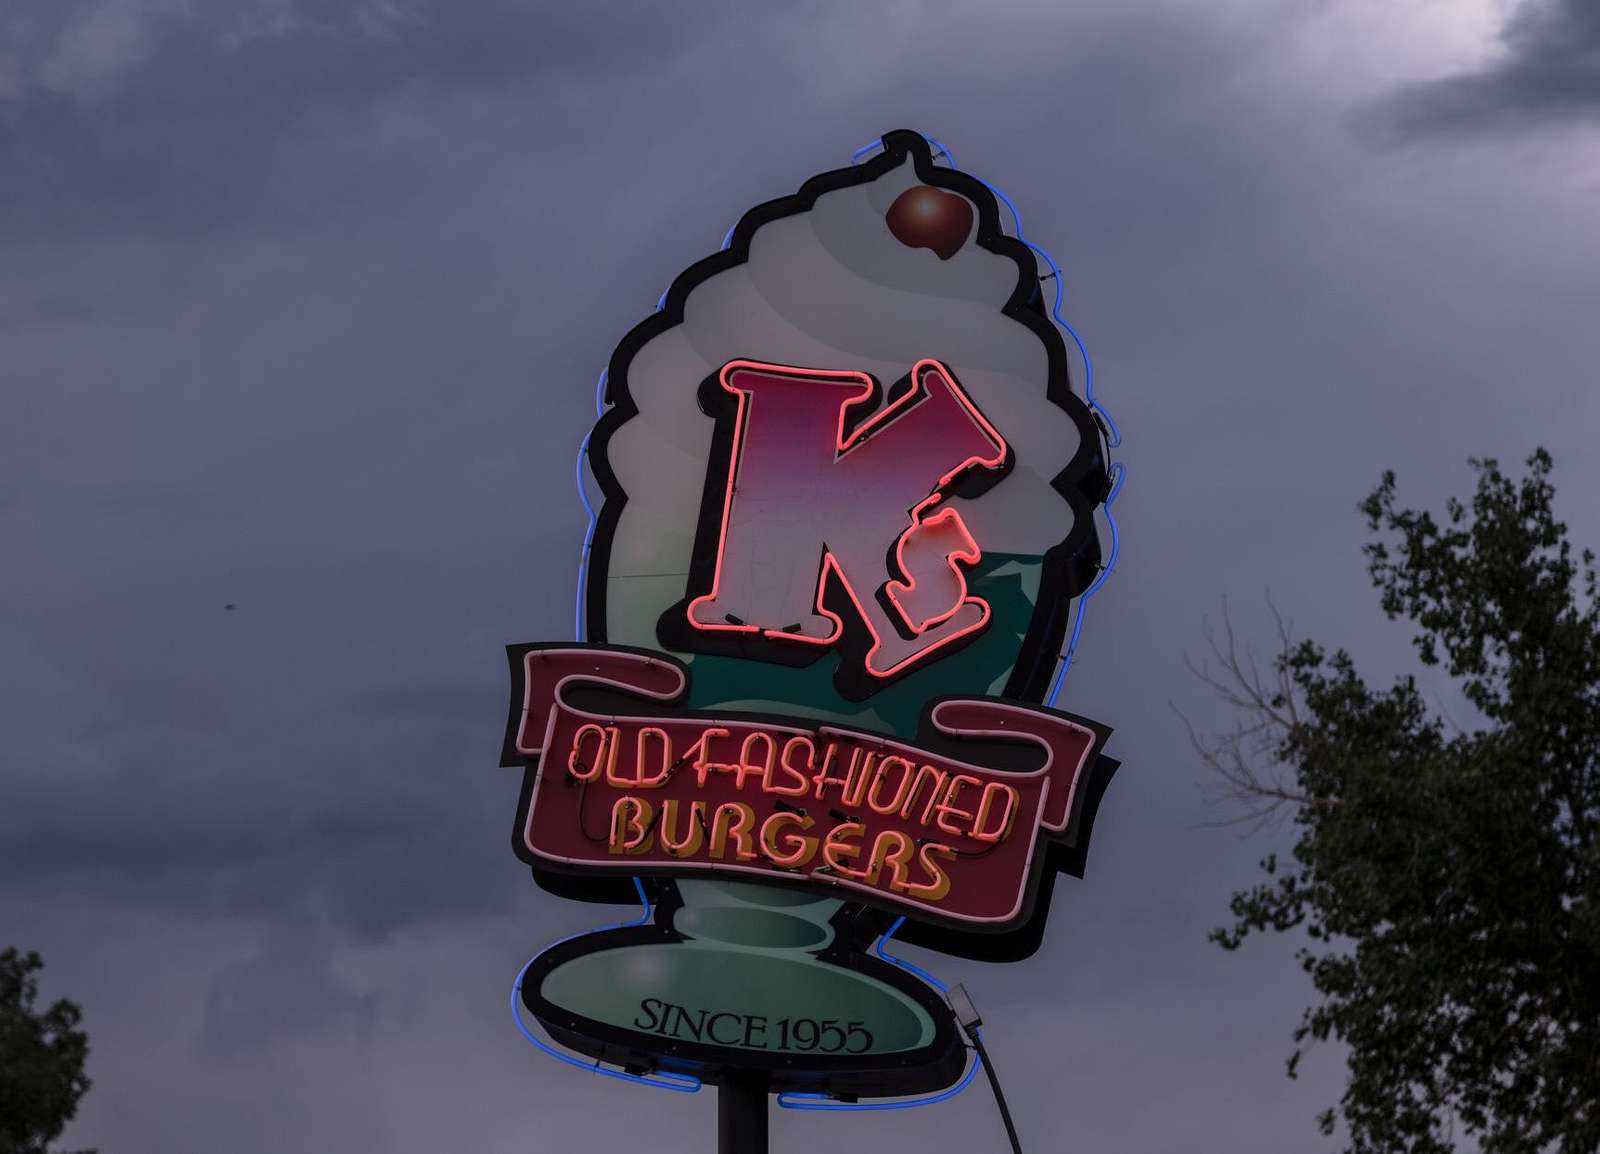 Neon sign for the K's Old Fashioned Burgers restaurant in Buena Vista, Colorado